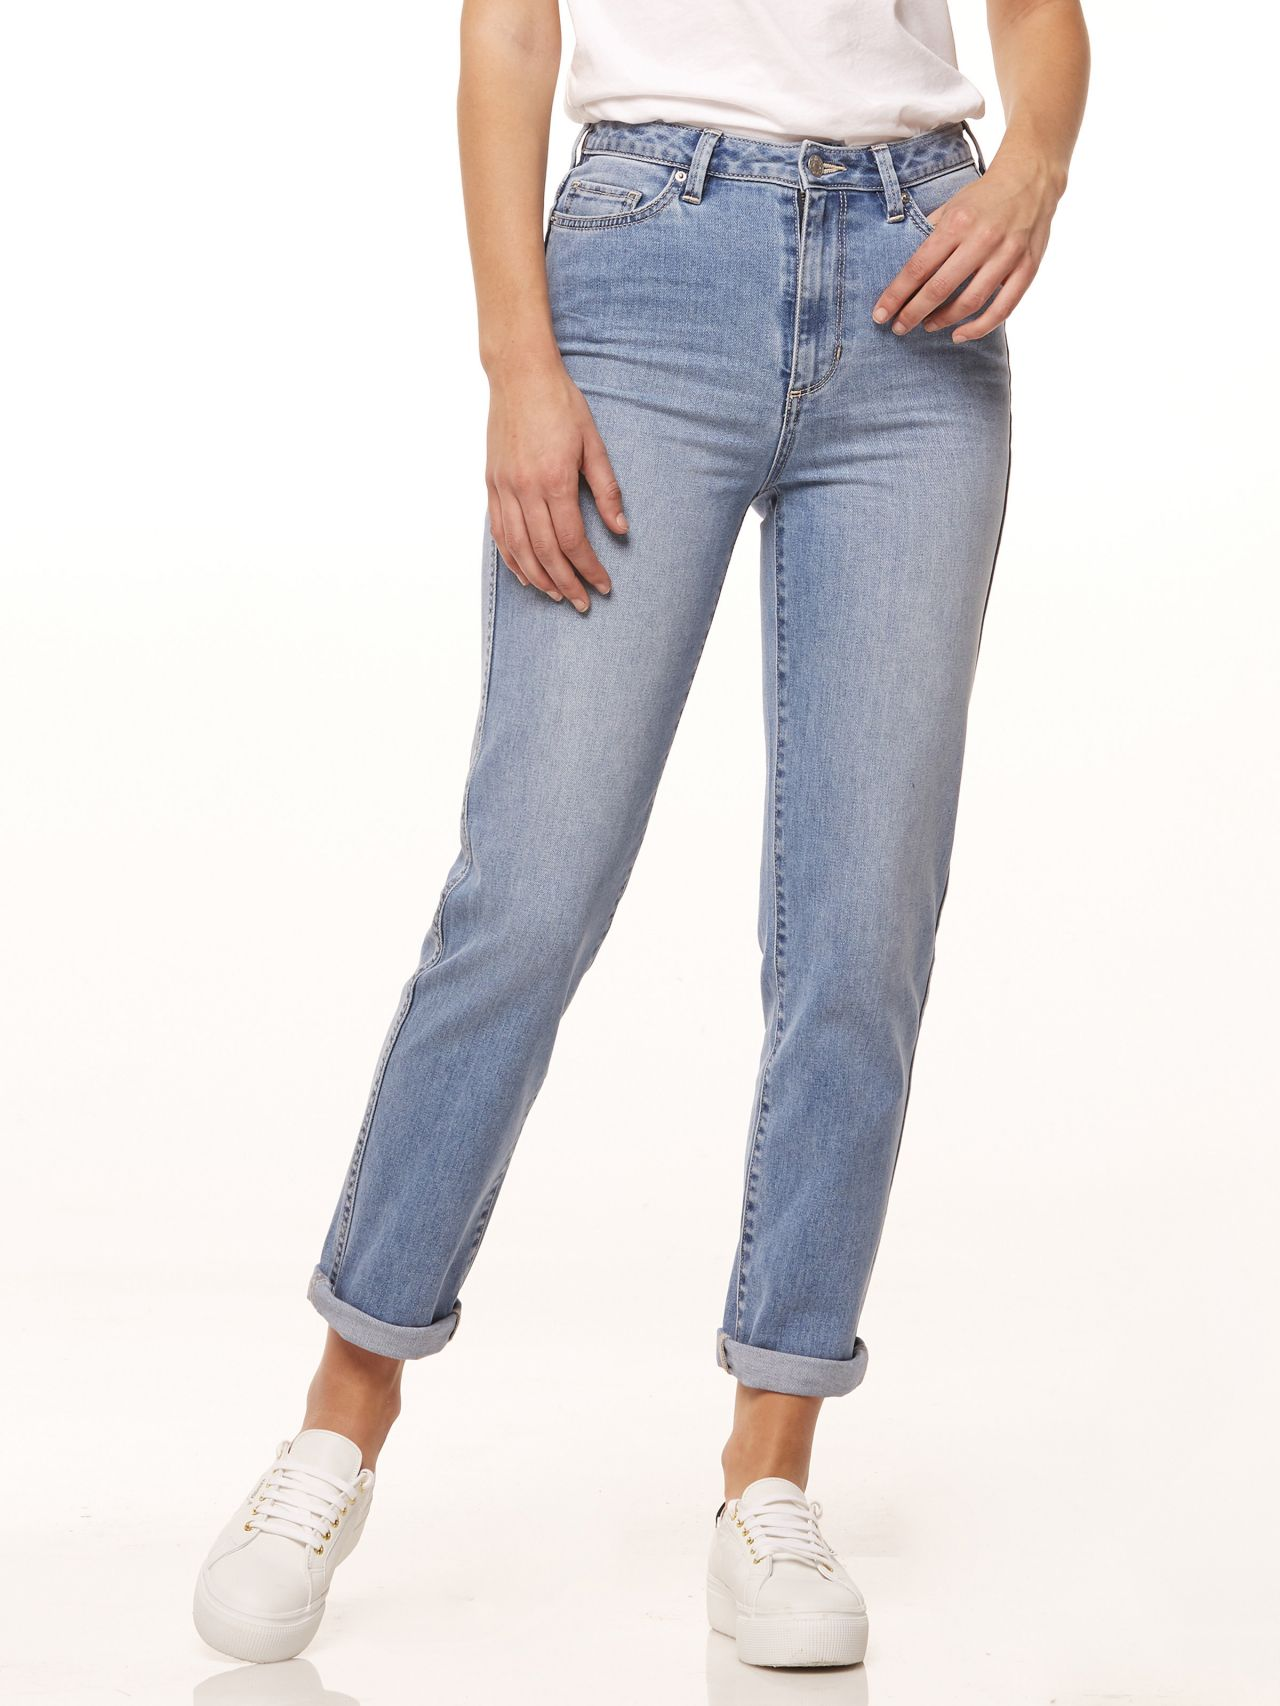 57c485a2 Riders By Lee Hi Mom Jean Blue Sands Denim - Just Jeans Online ...